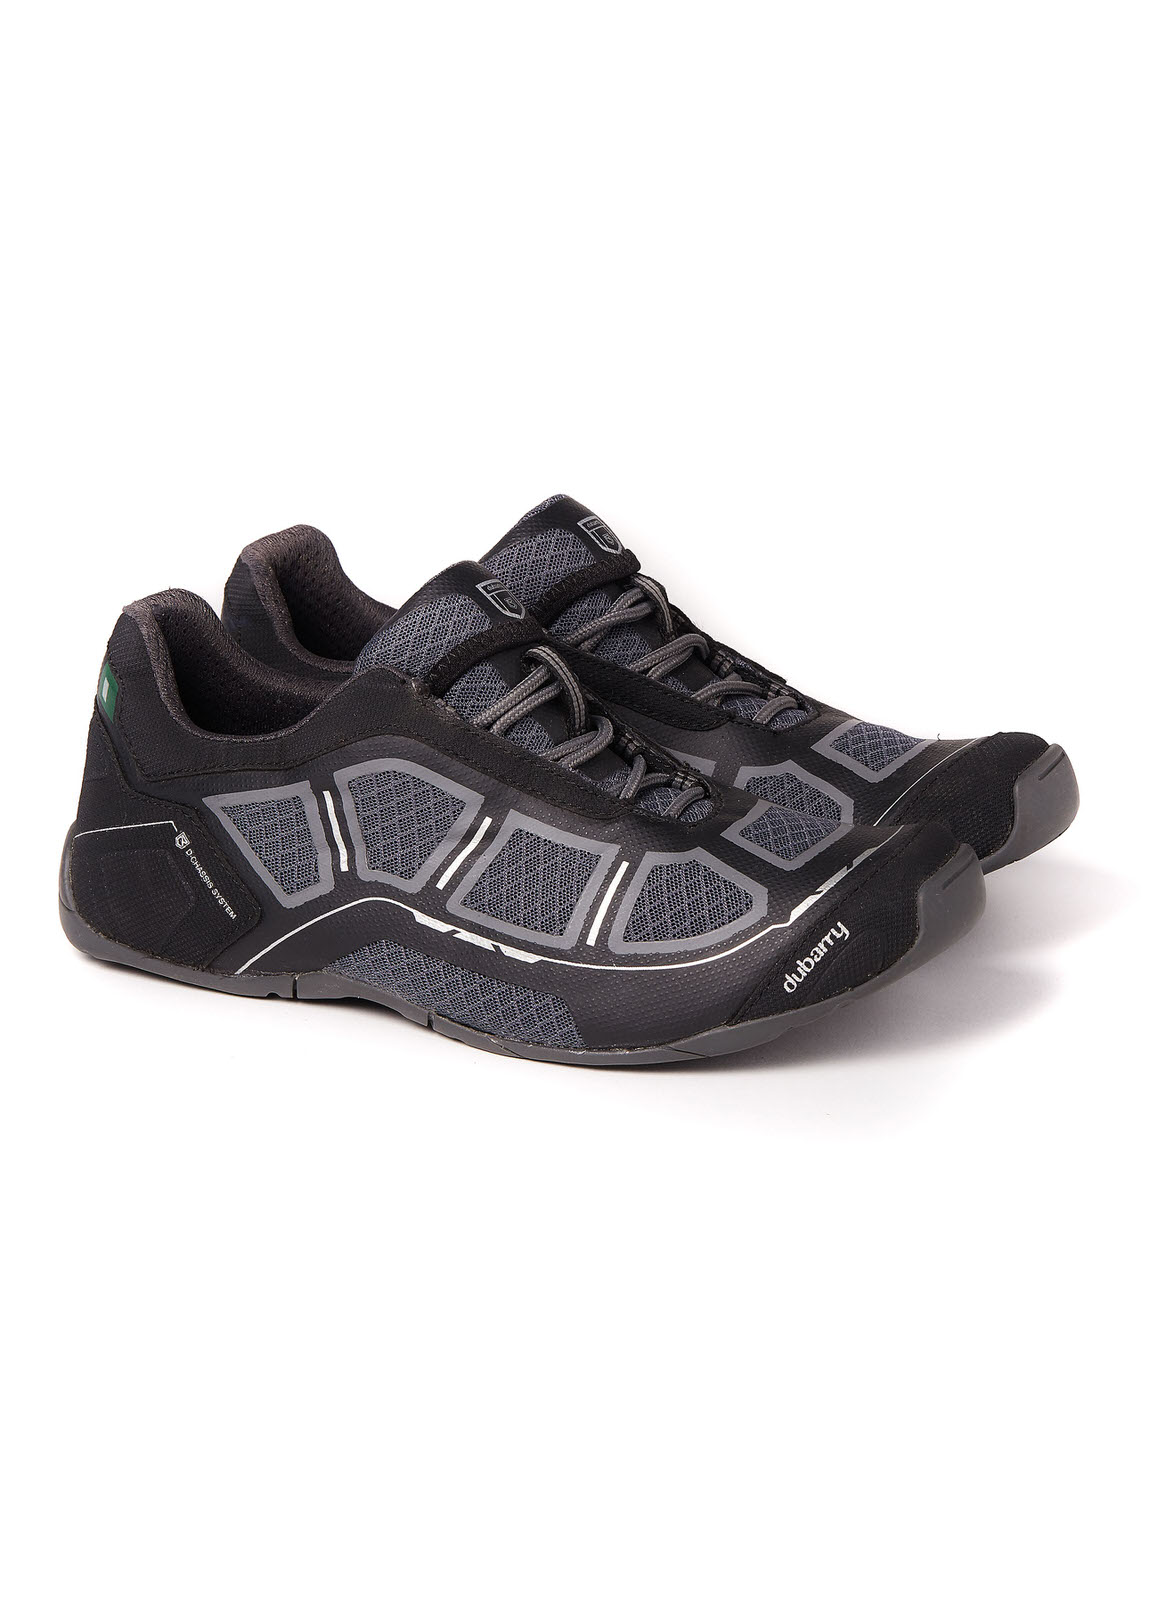 Easkey_Sailing_Shoe_Carbon_Image_1